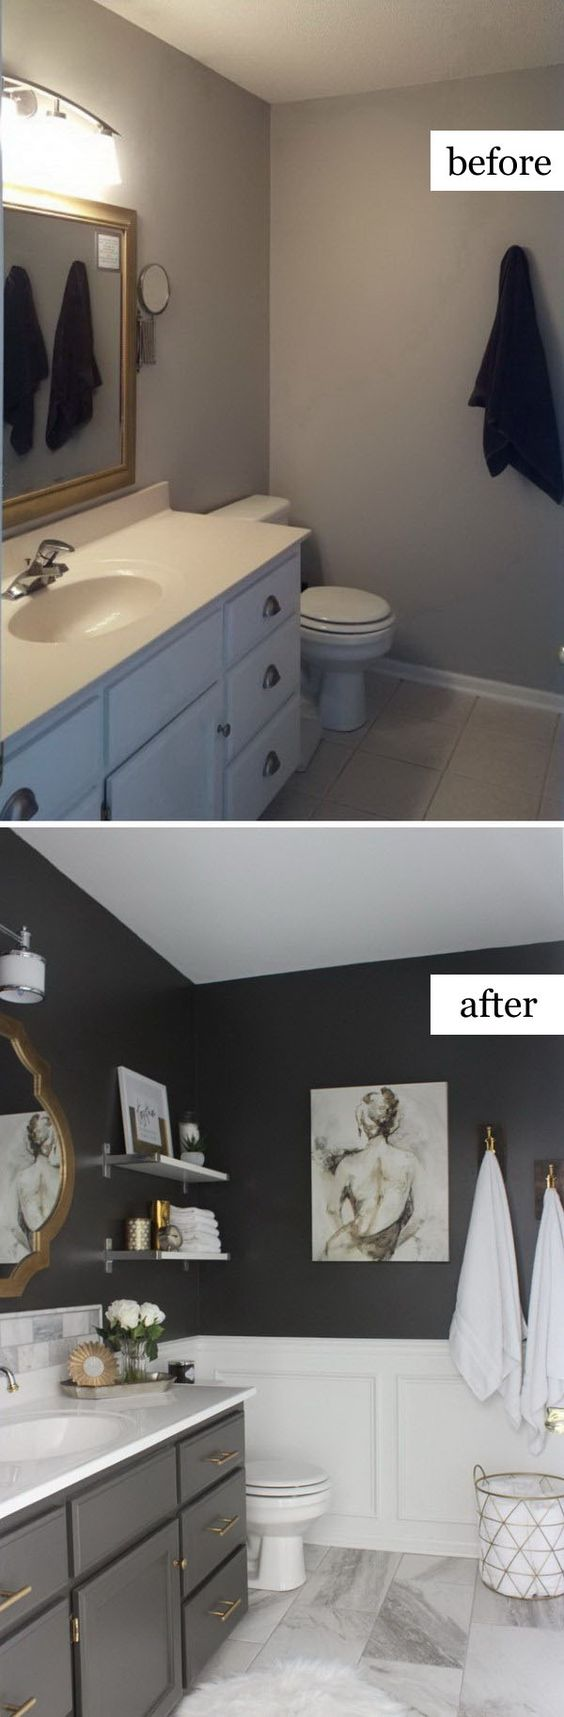 10 before and after bathroom remodel ideas for 2016 2017 Before and after interior design projects